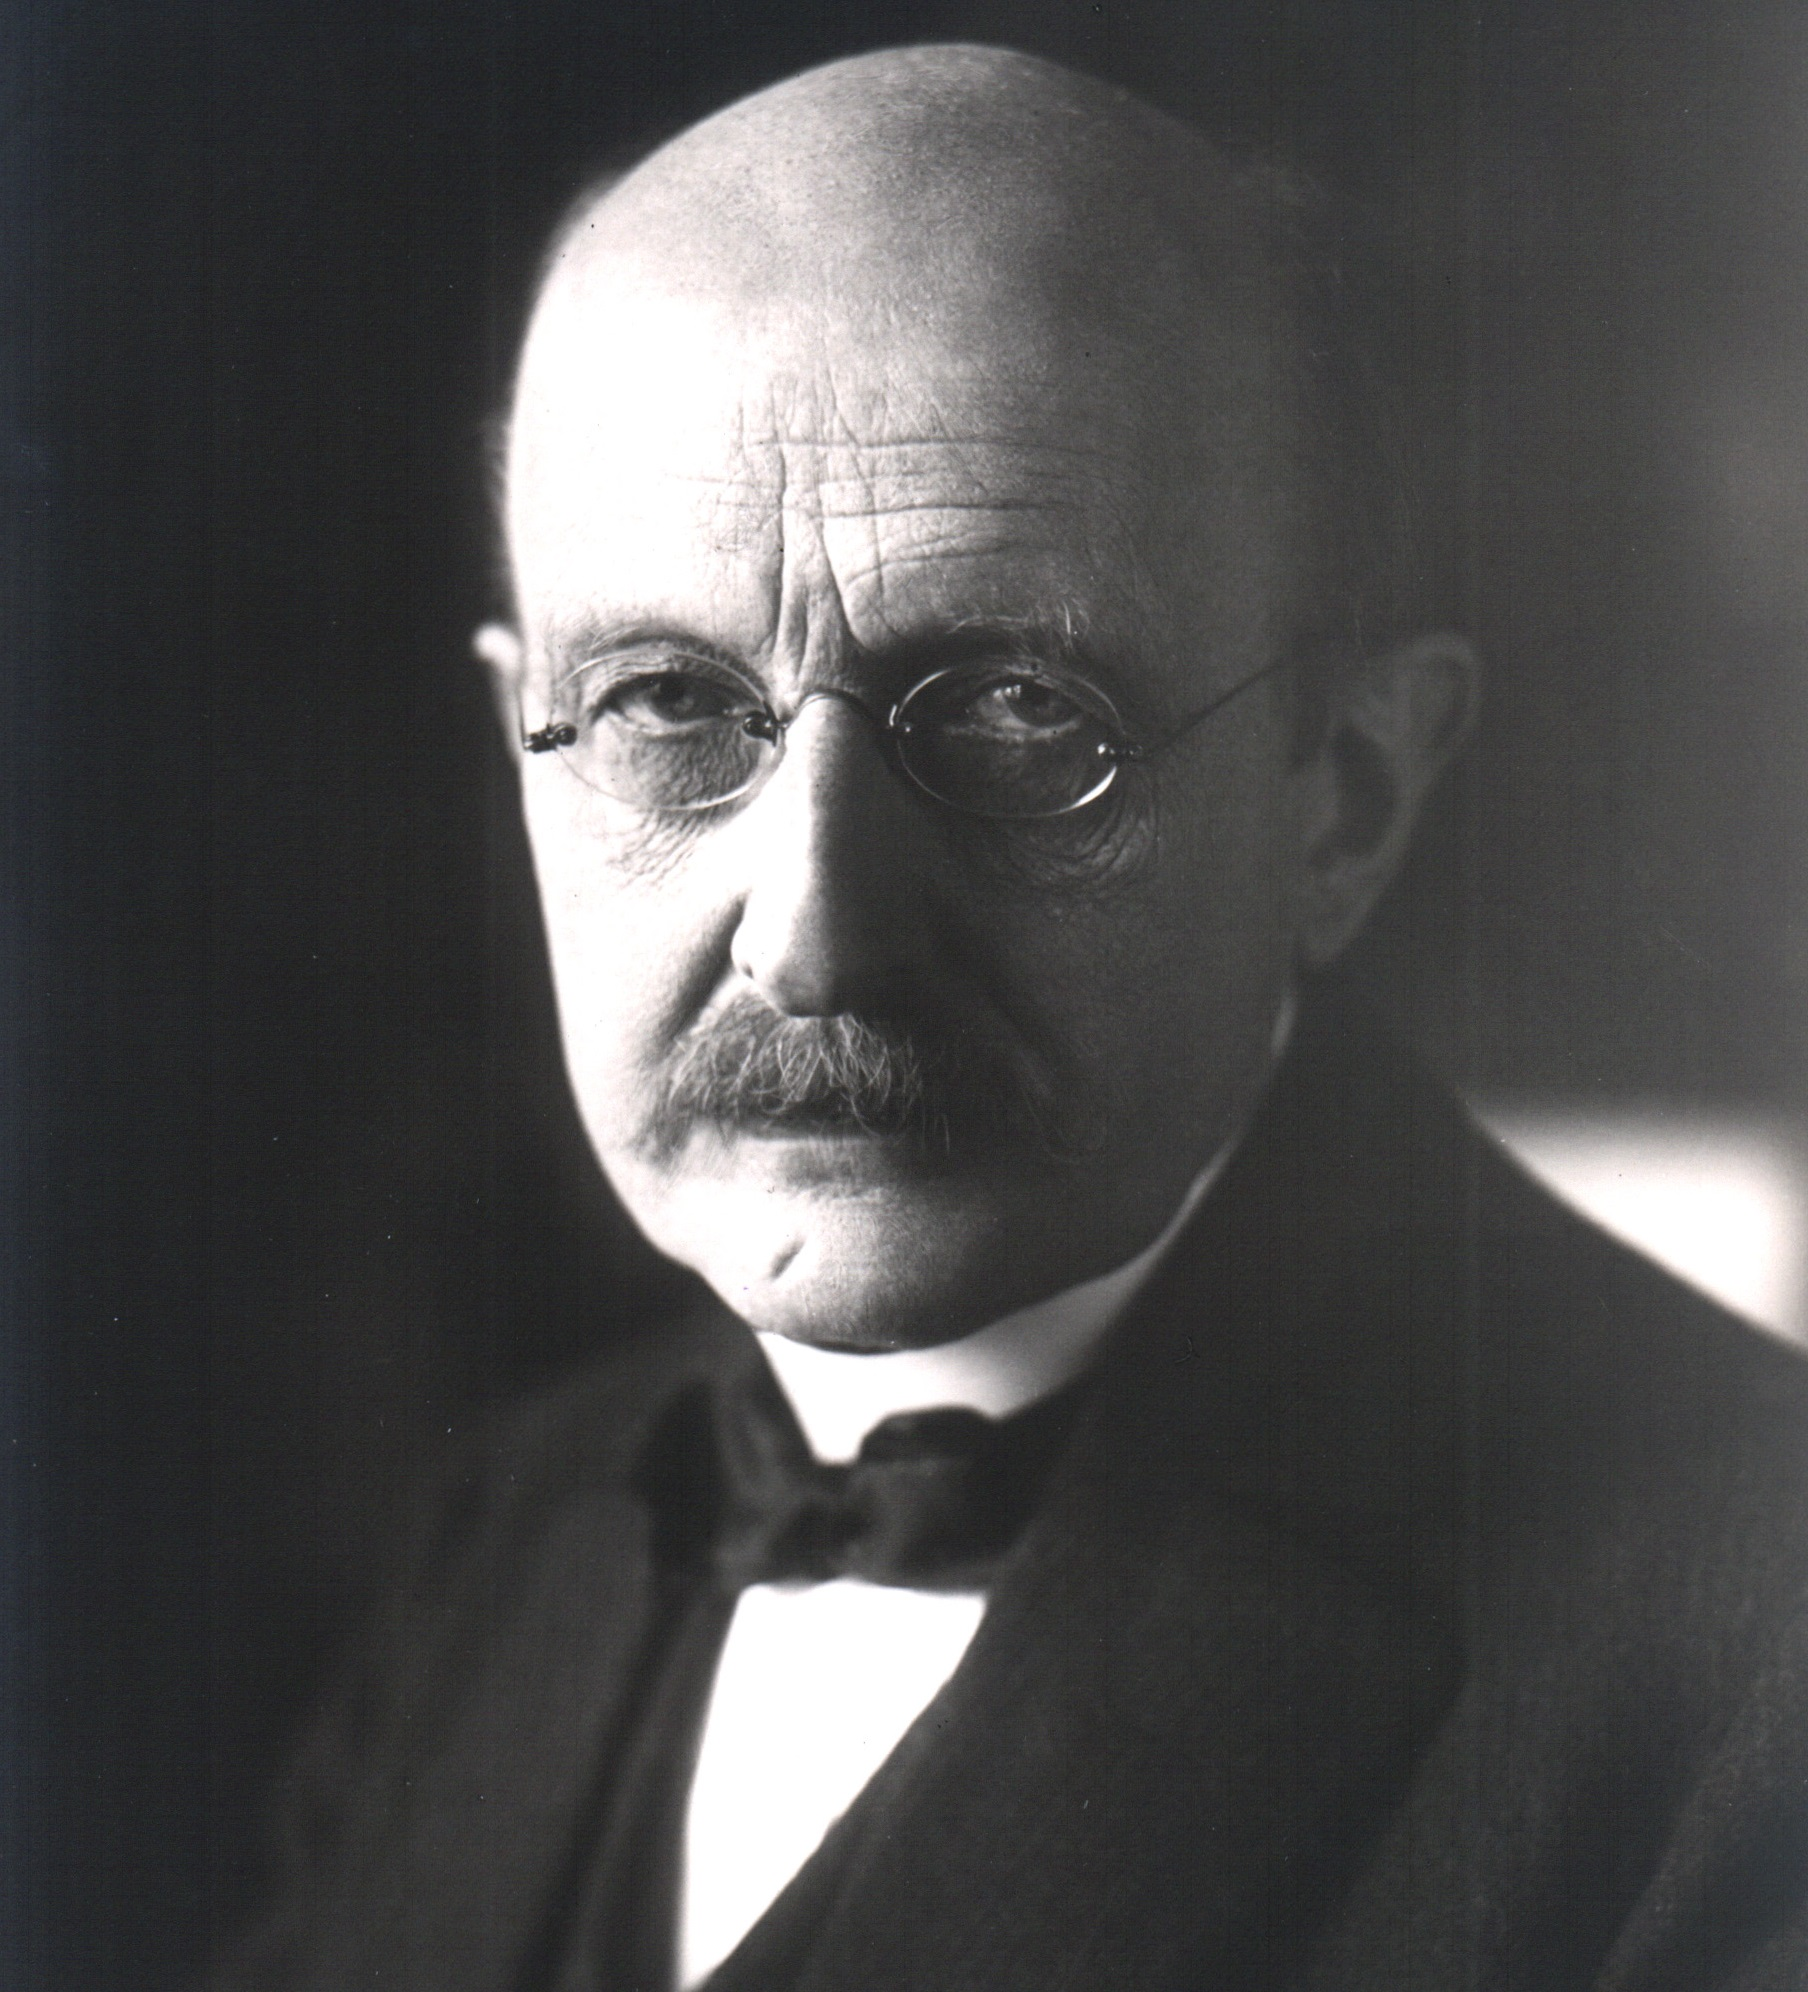 Who was Max Planck?